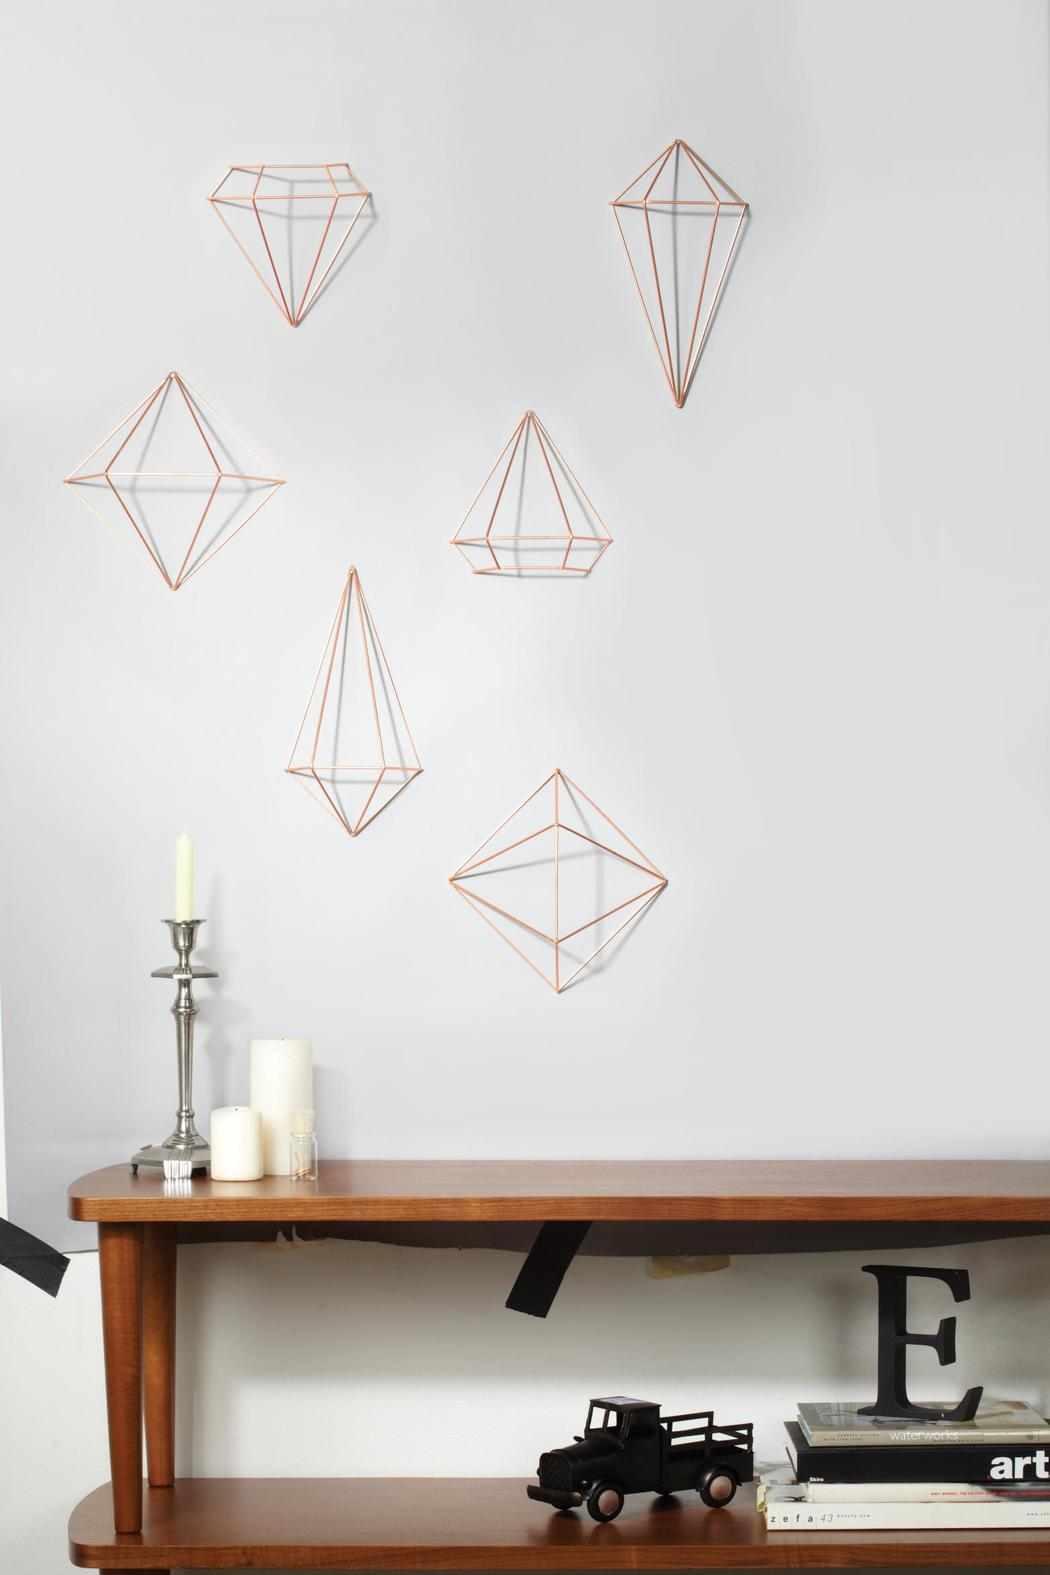 Umbra Wall Decor umbra prisma wall-decor copper from saskatchewantwisted goods